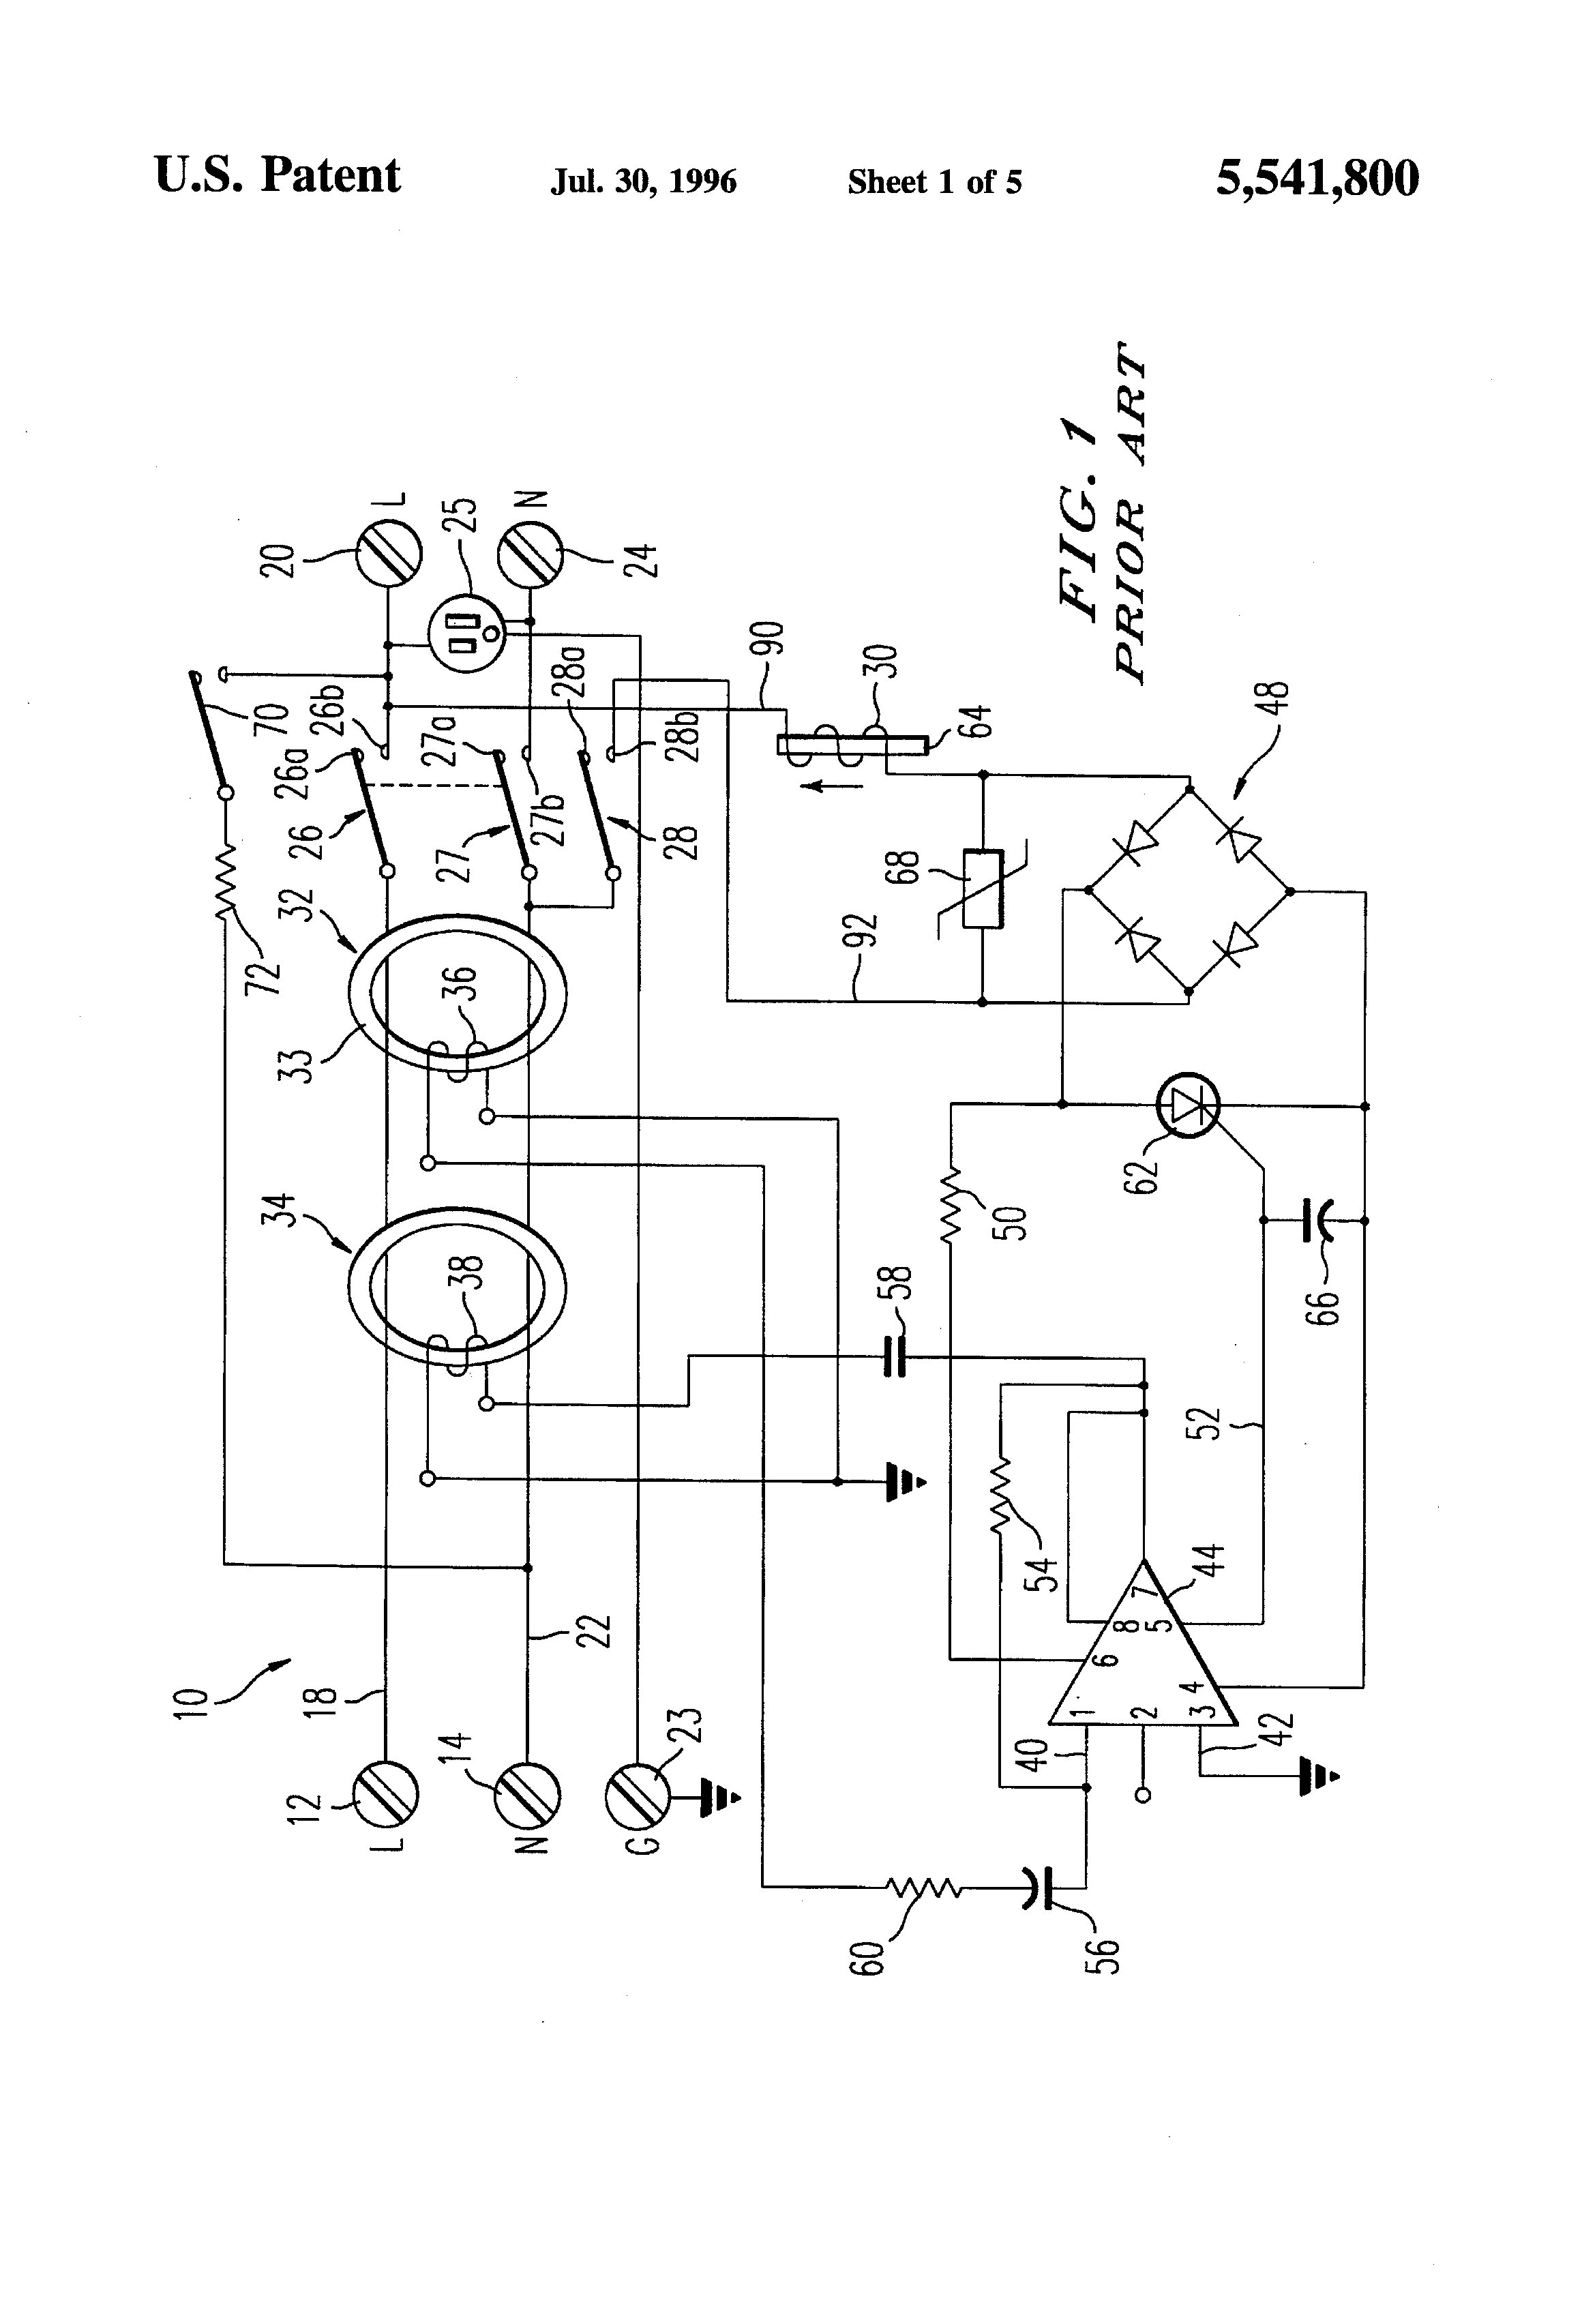 Pivoting Face Receptacle Google Patents On Wiring In Receptacles Series Patent Us5541800 Reverse Indicator For Gfci